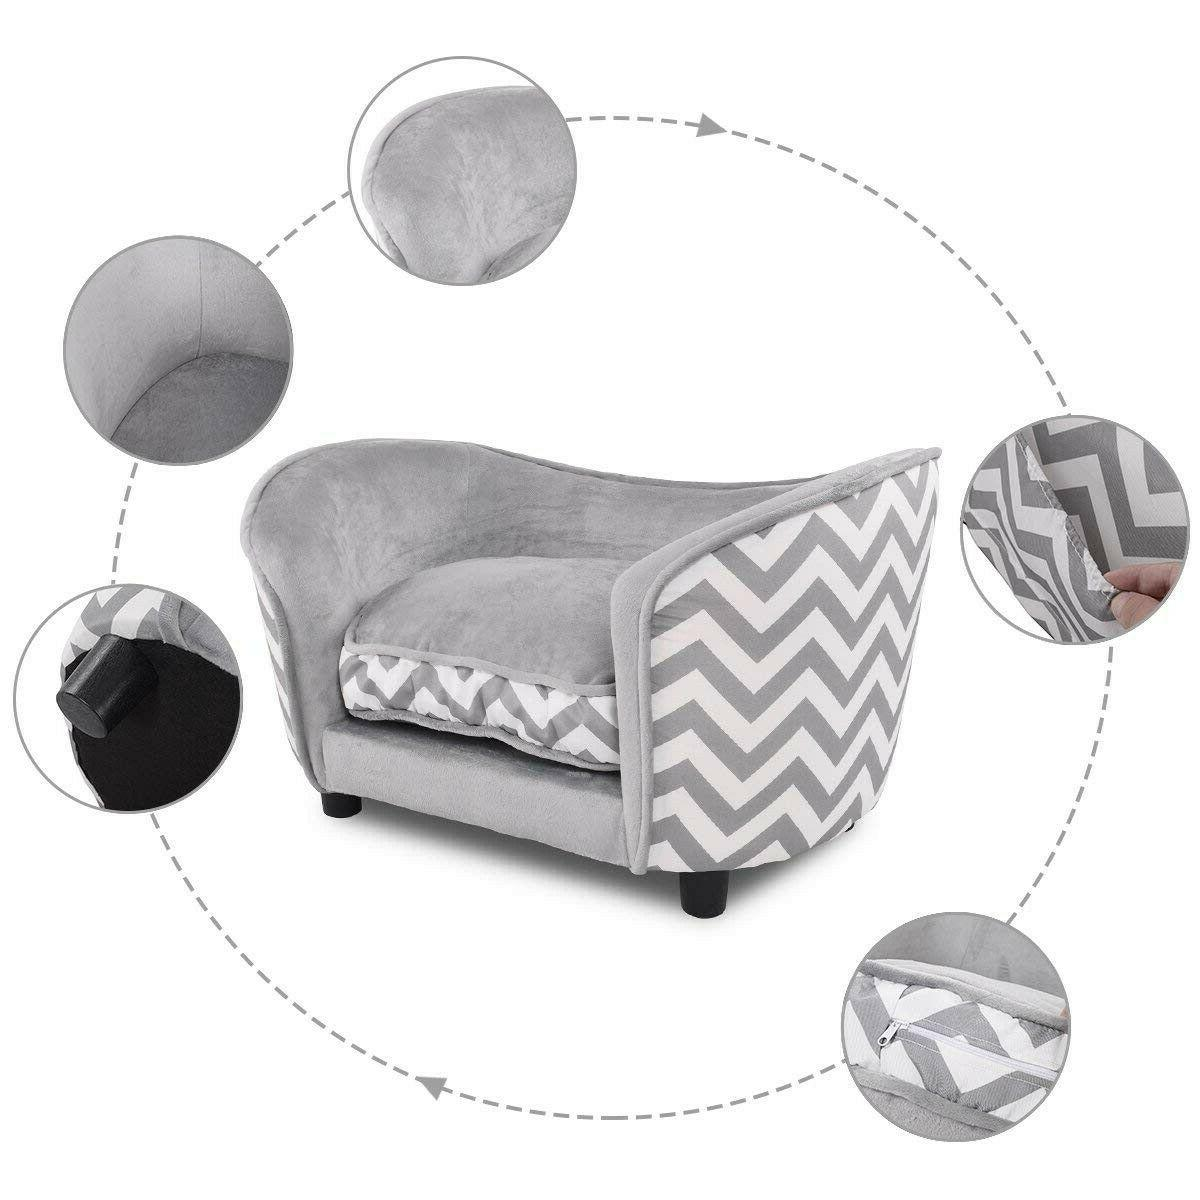 Small Bed Beds Dogs Sleeping Soft Gray New